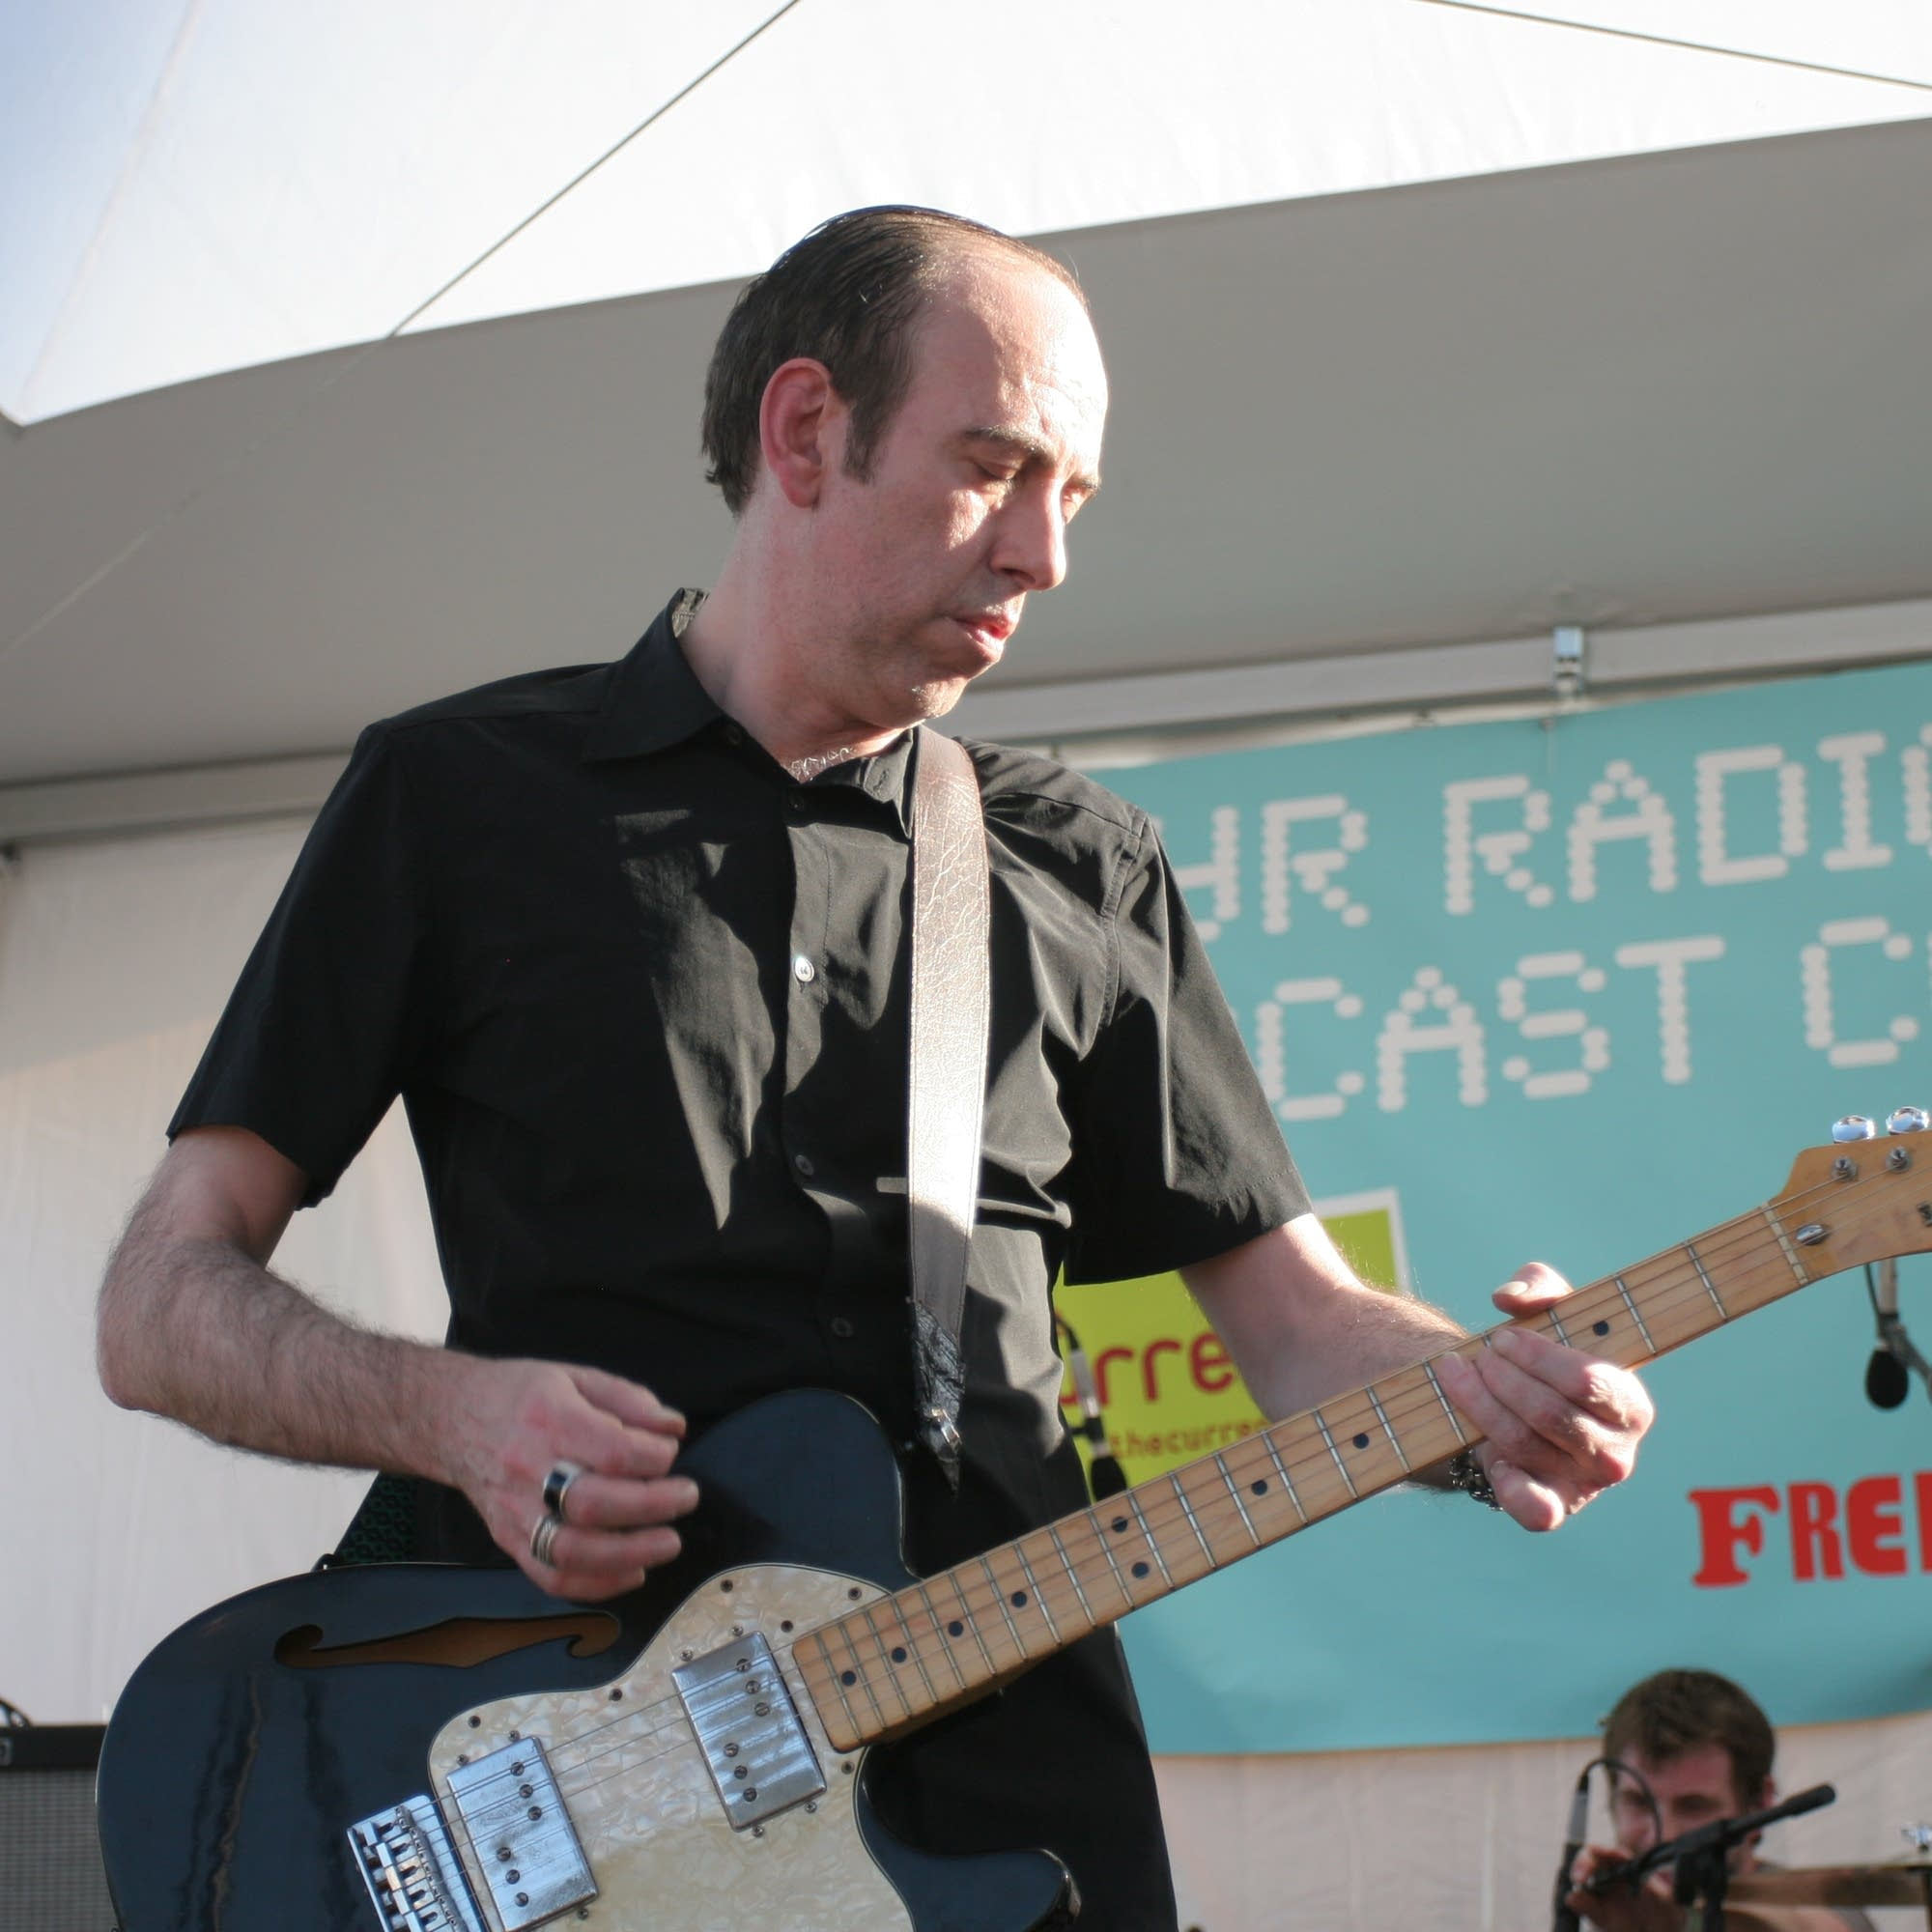 Mick Jones plays The Current's stage at SXSW